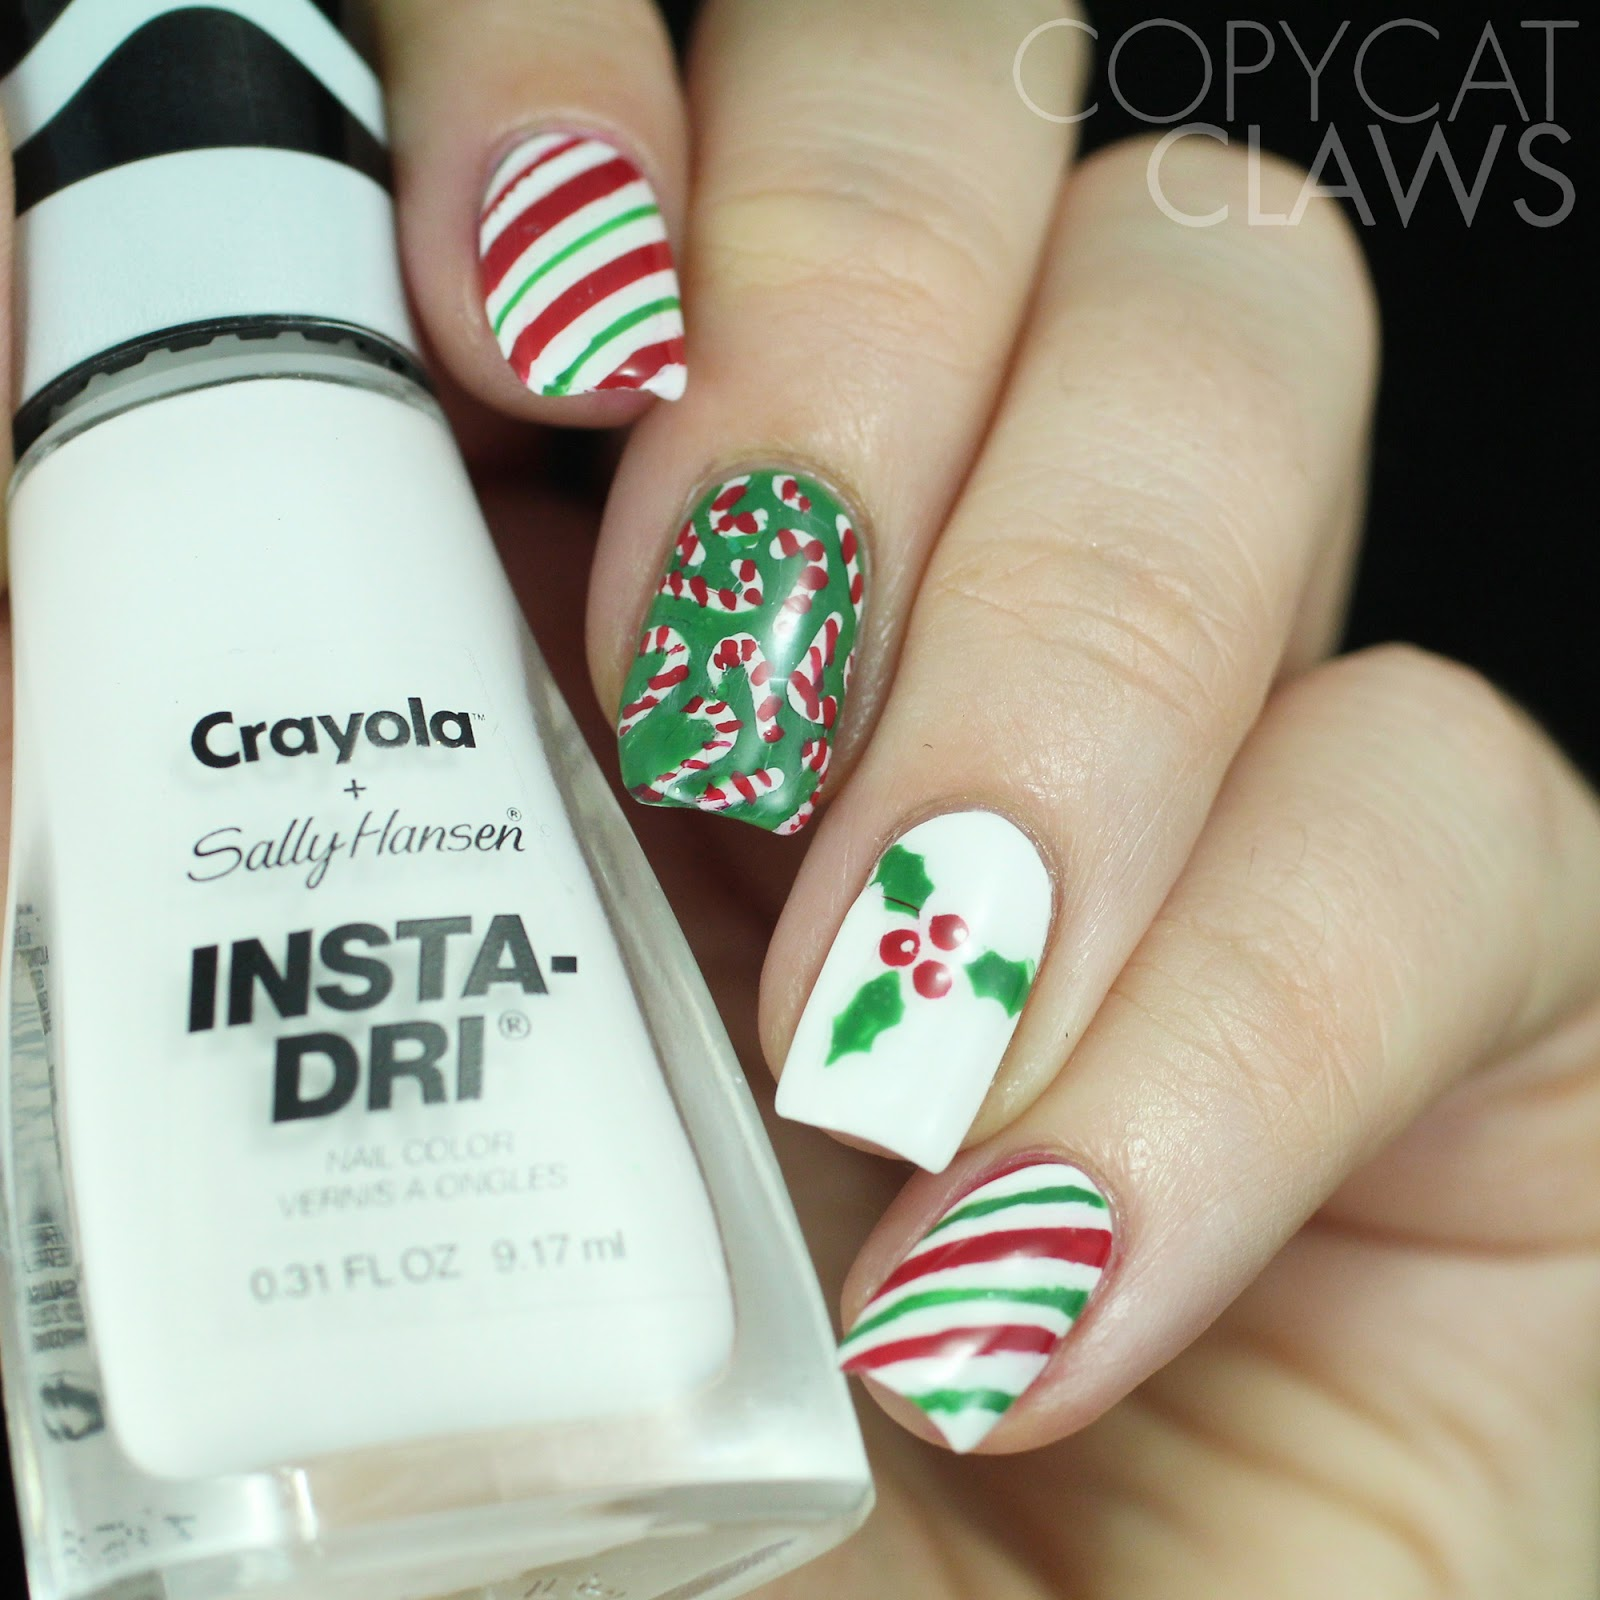 Copycat Claws: Whats Up Nails Winter & Christmas Nail Stencils